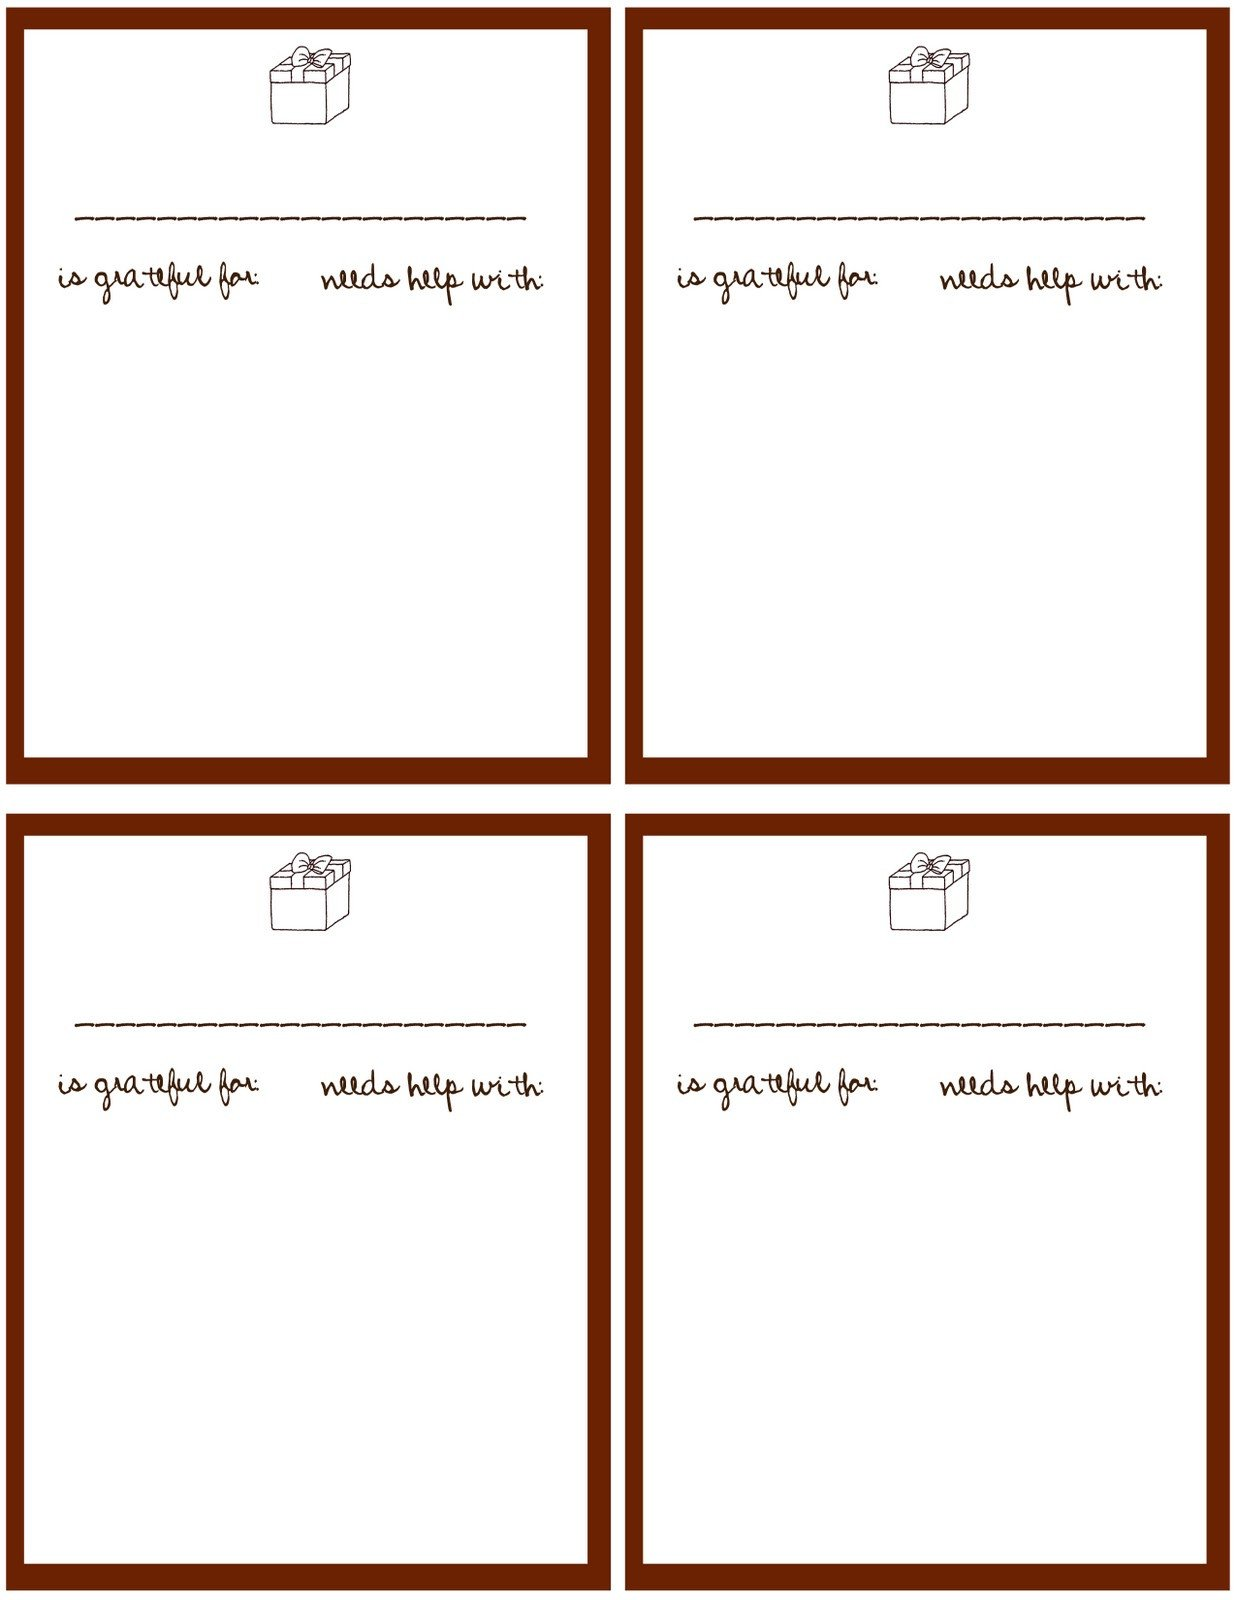 Prayer Card Template Free Amber S Notebook Daily Prayer Cards Printable